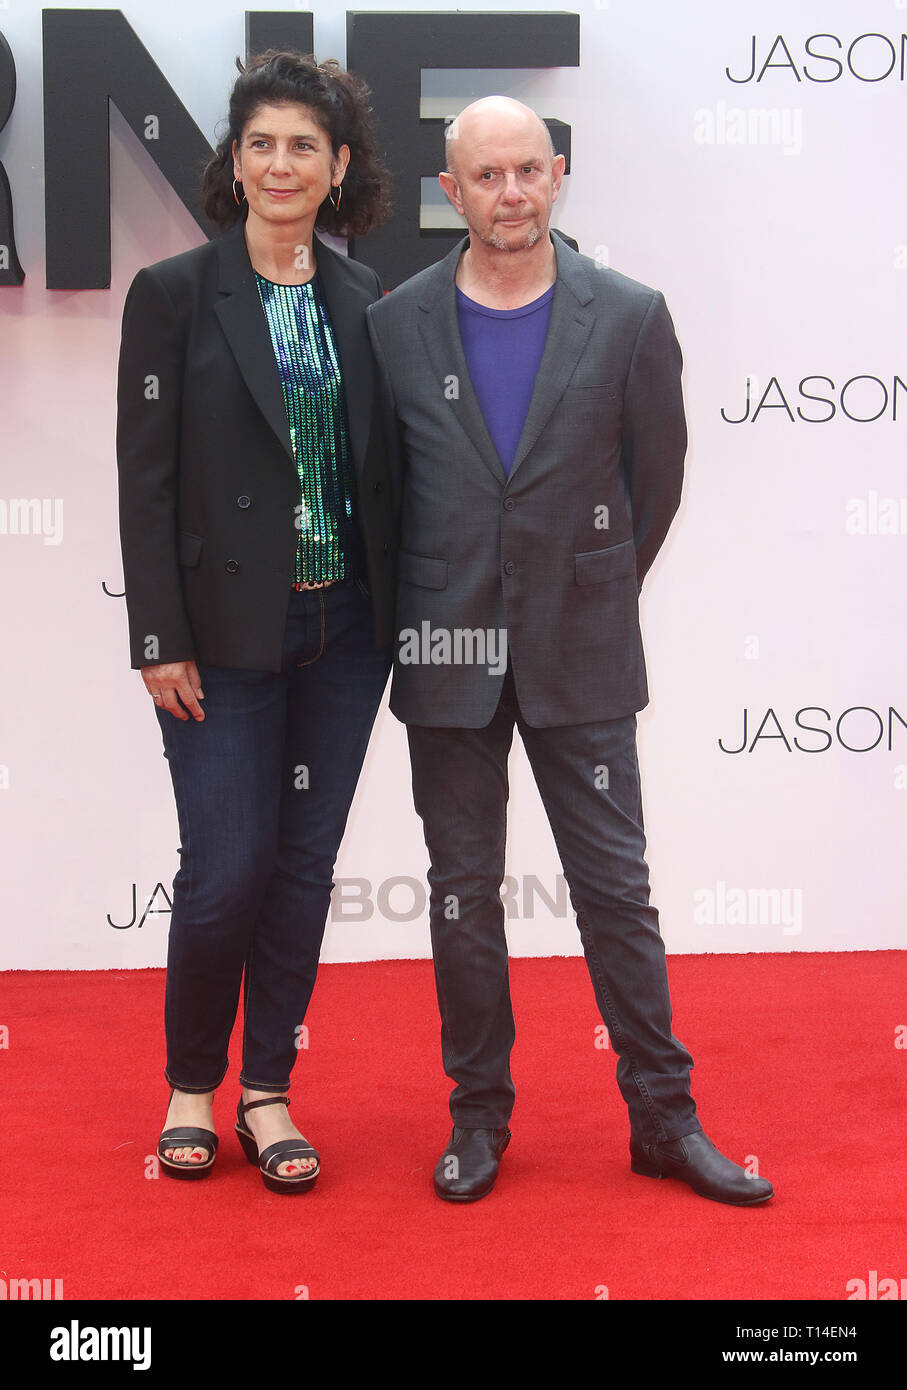 Jul 11, 2016 - London, England, UK - 'Jason Bourne' European Premiere, Odeon Leicester Square - Red Carpet Arrivals Photo Shows: Amanda Posey and Nick - Stock Image